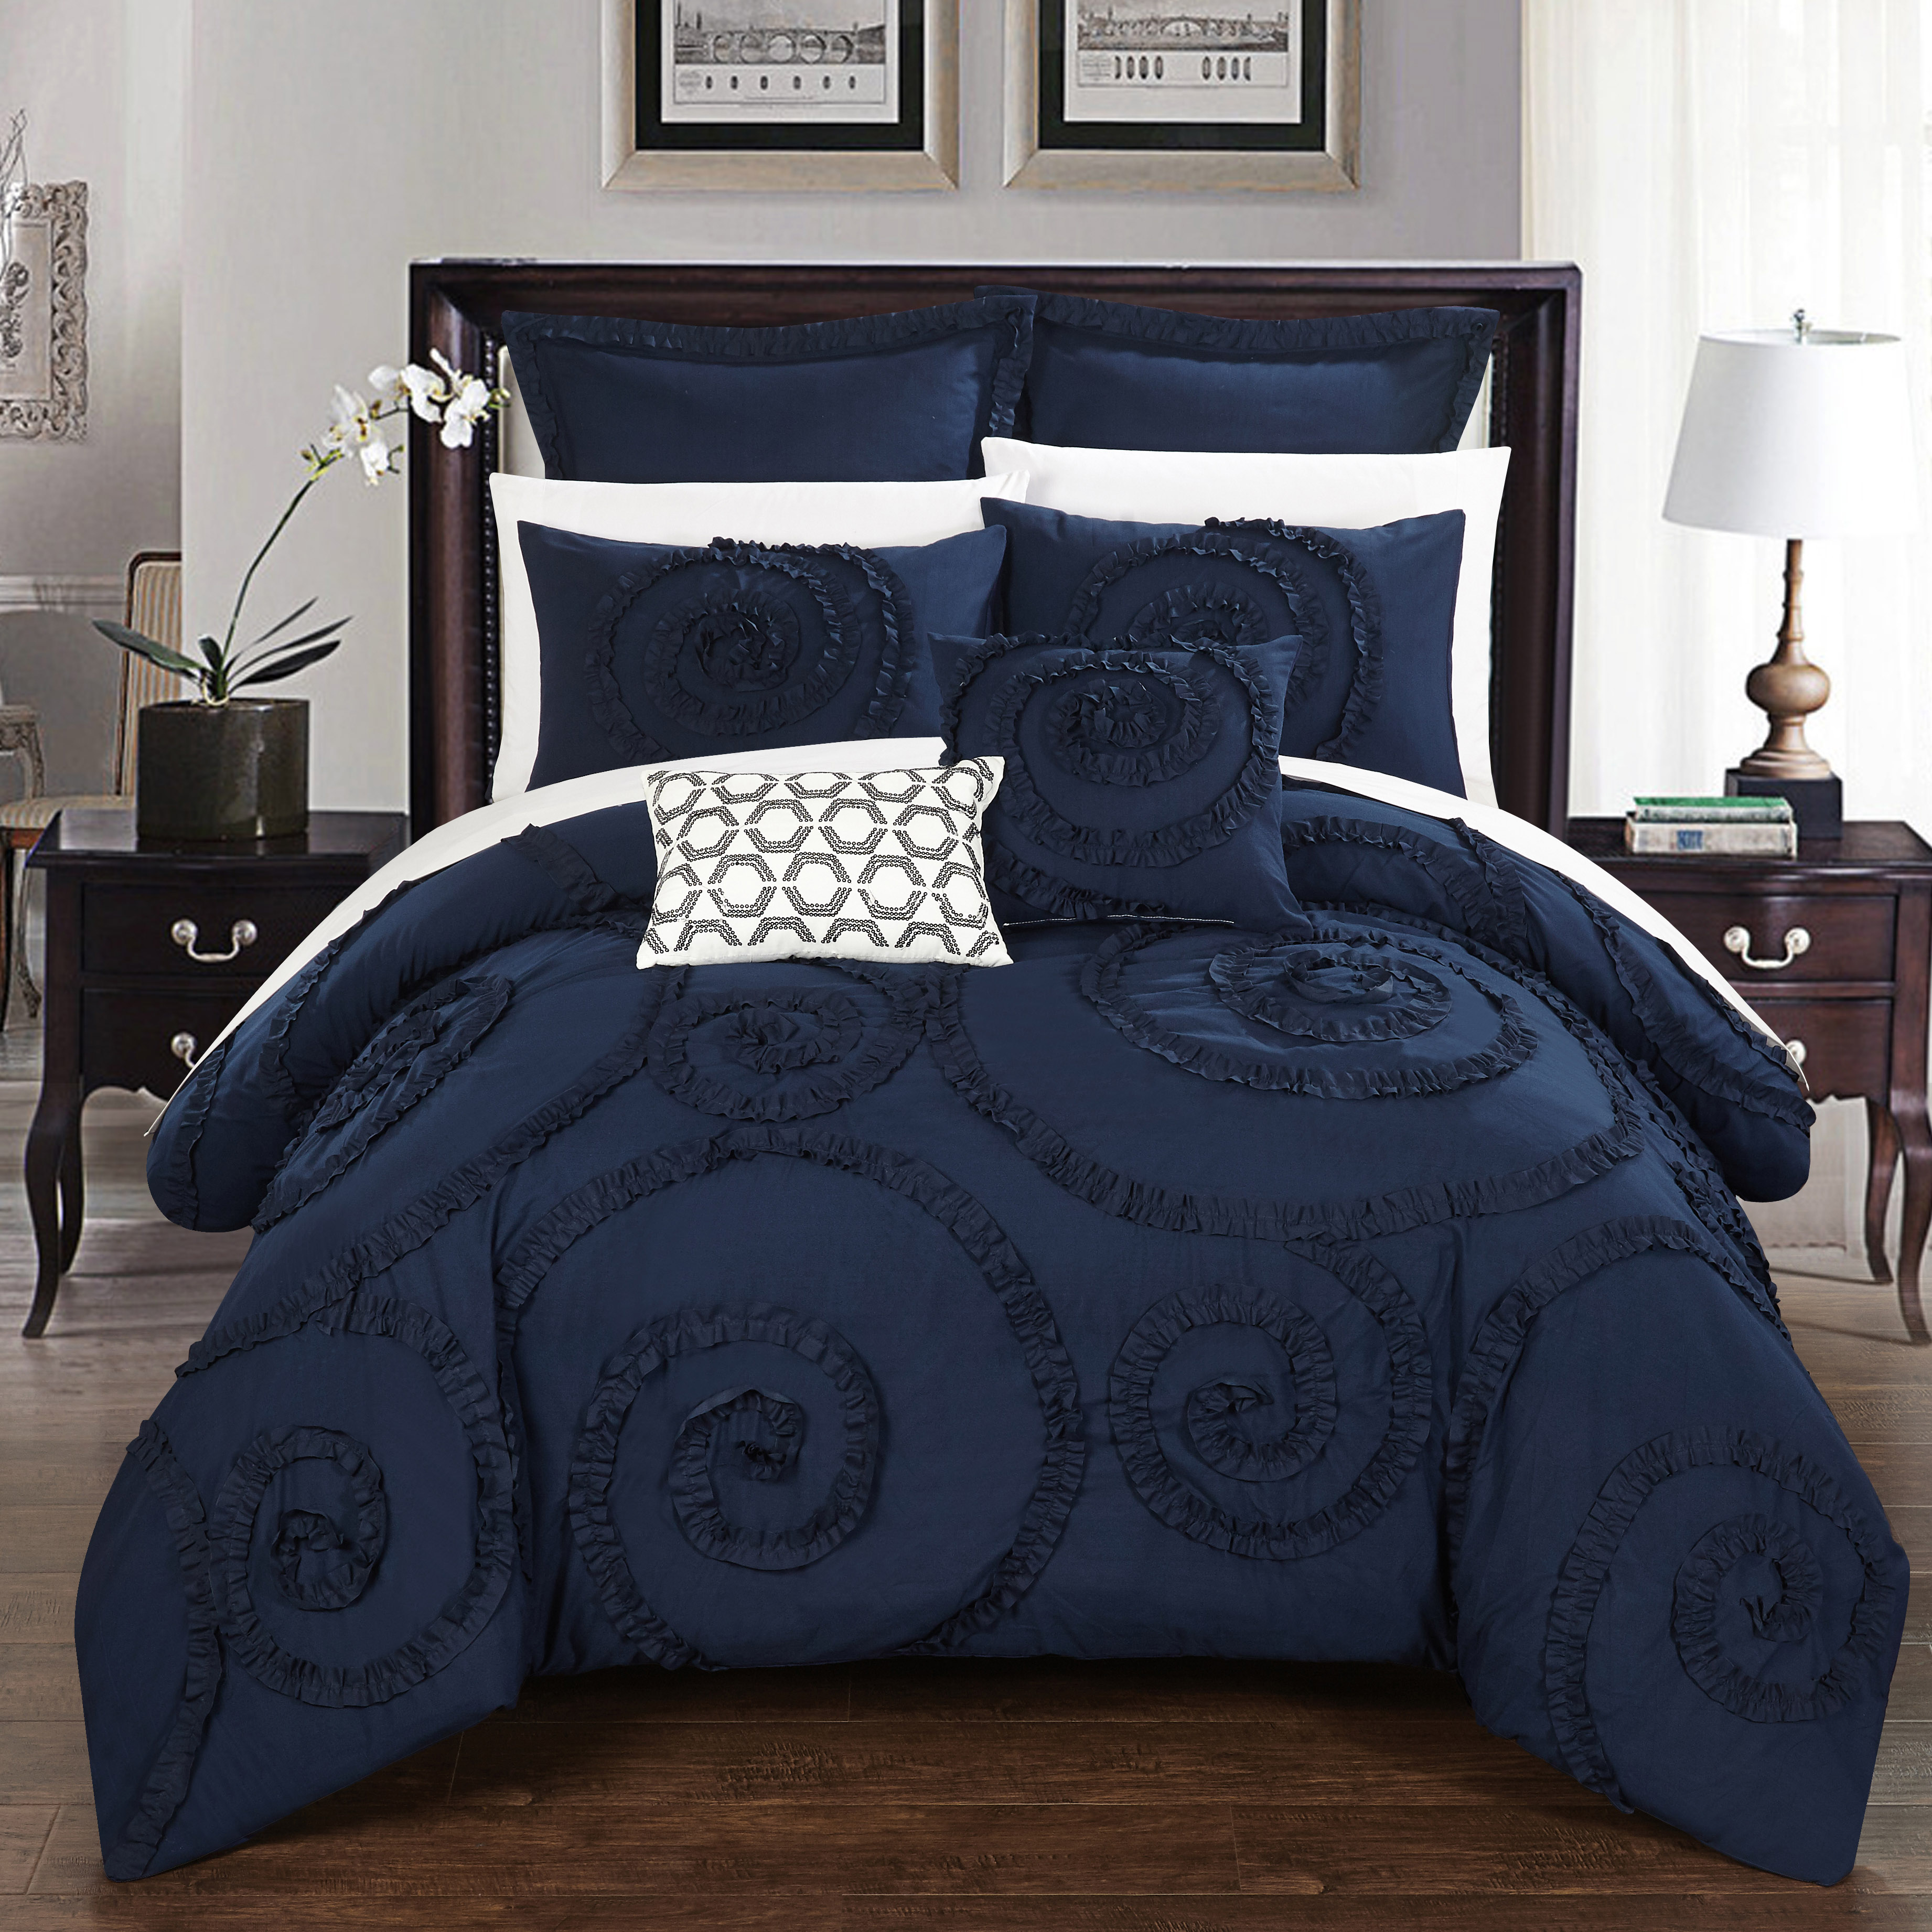 Chic Home 7-Piece Rosamond Floral Ruffled Etched Embroidery King Comforter Set Navy